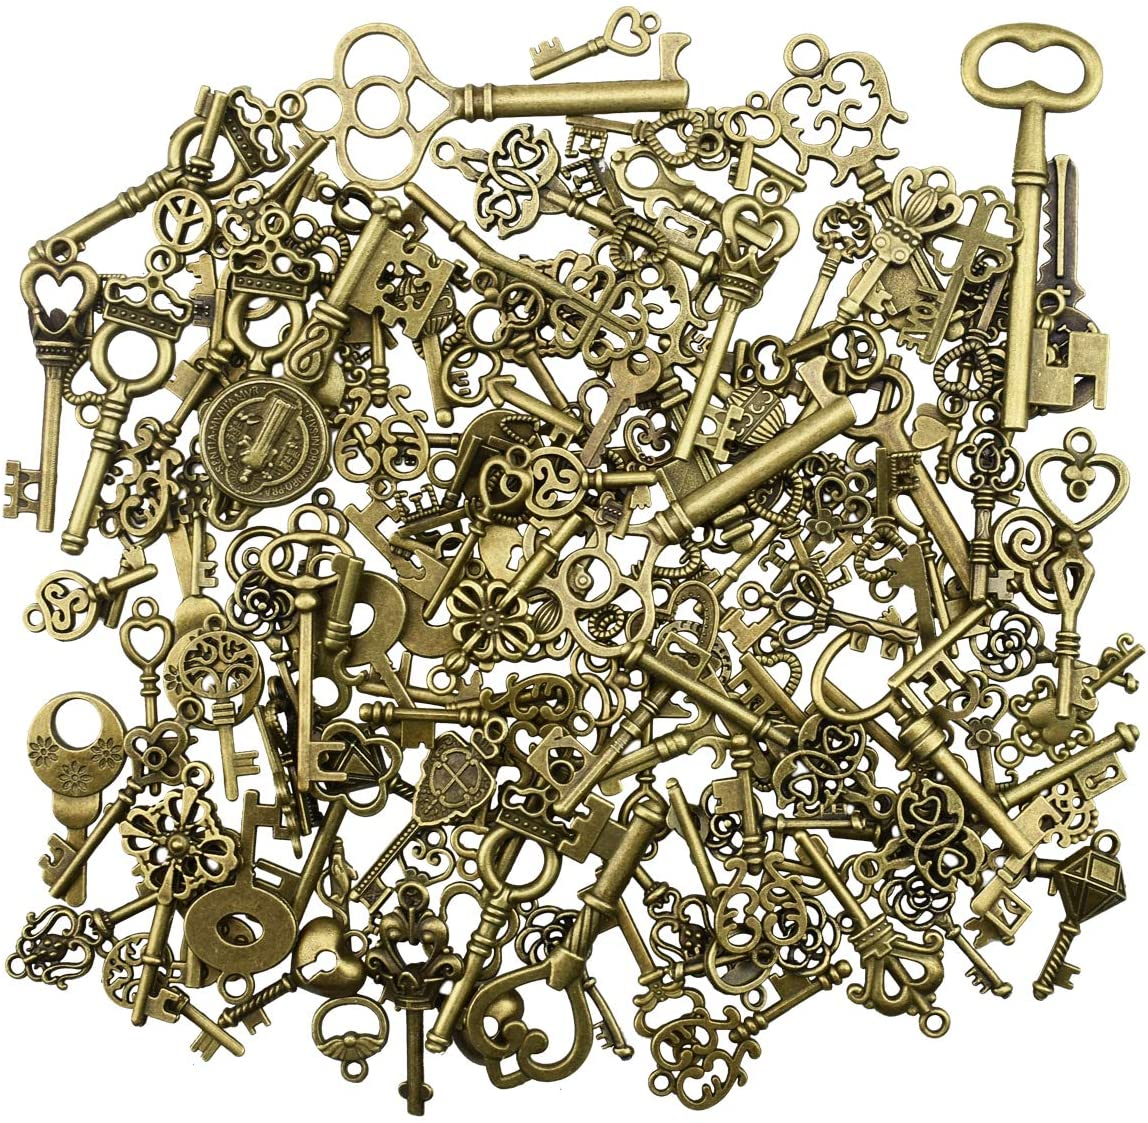 150Pcs Antique Skeleton Key Charms Pendants for Crafting Supplies Jewelry Findings Making Accessory DIY Necklace Bracelet